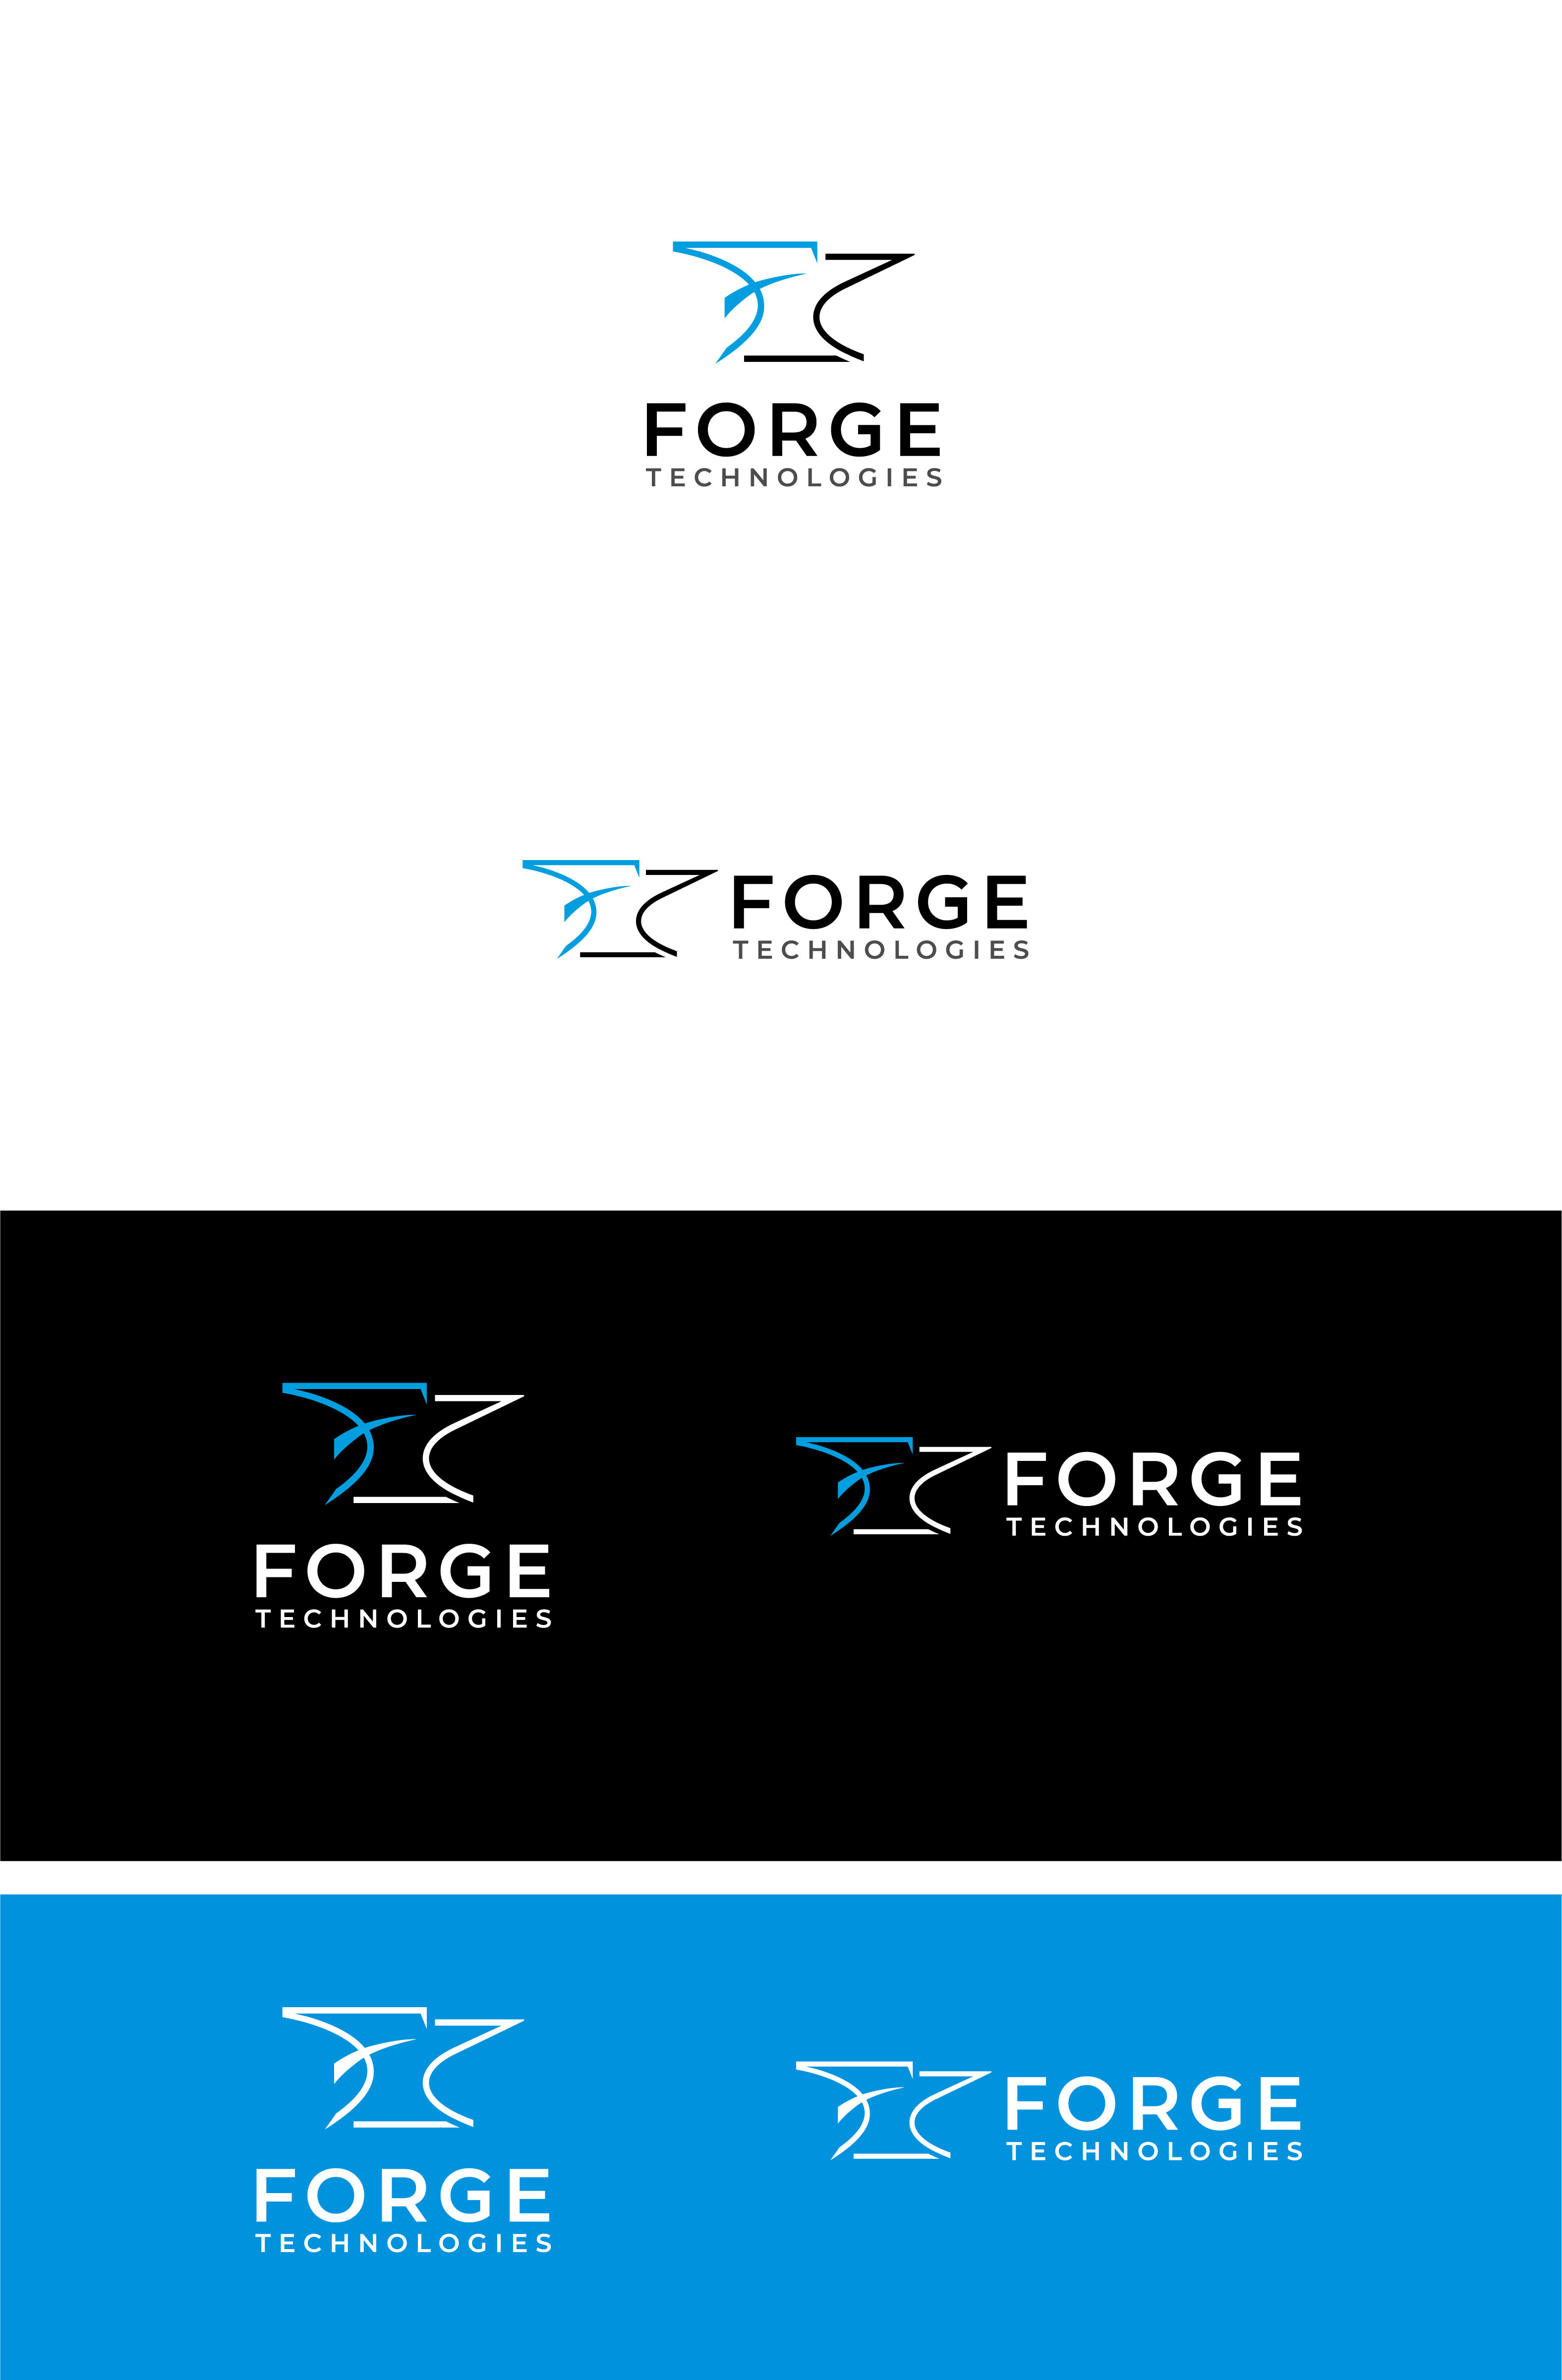 Powerful and professional logo for a disruptive tech startup called Forge Technologies Ltd.